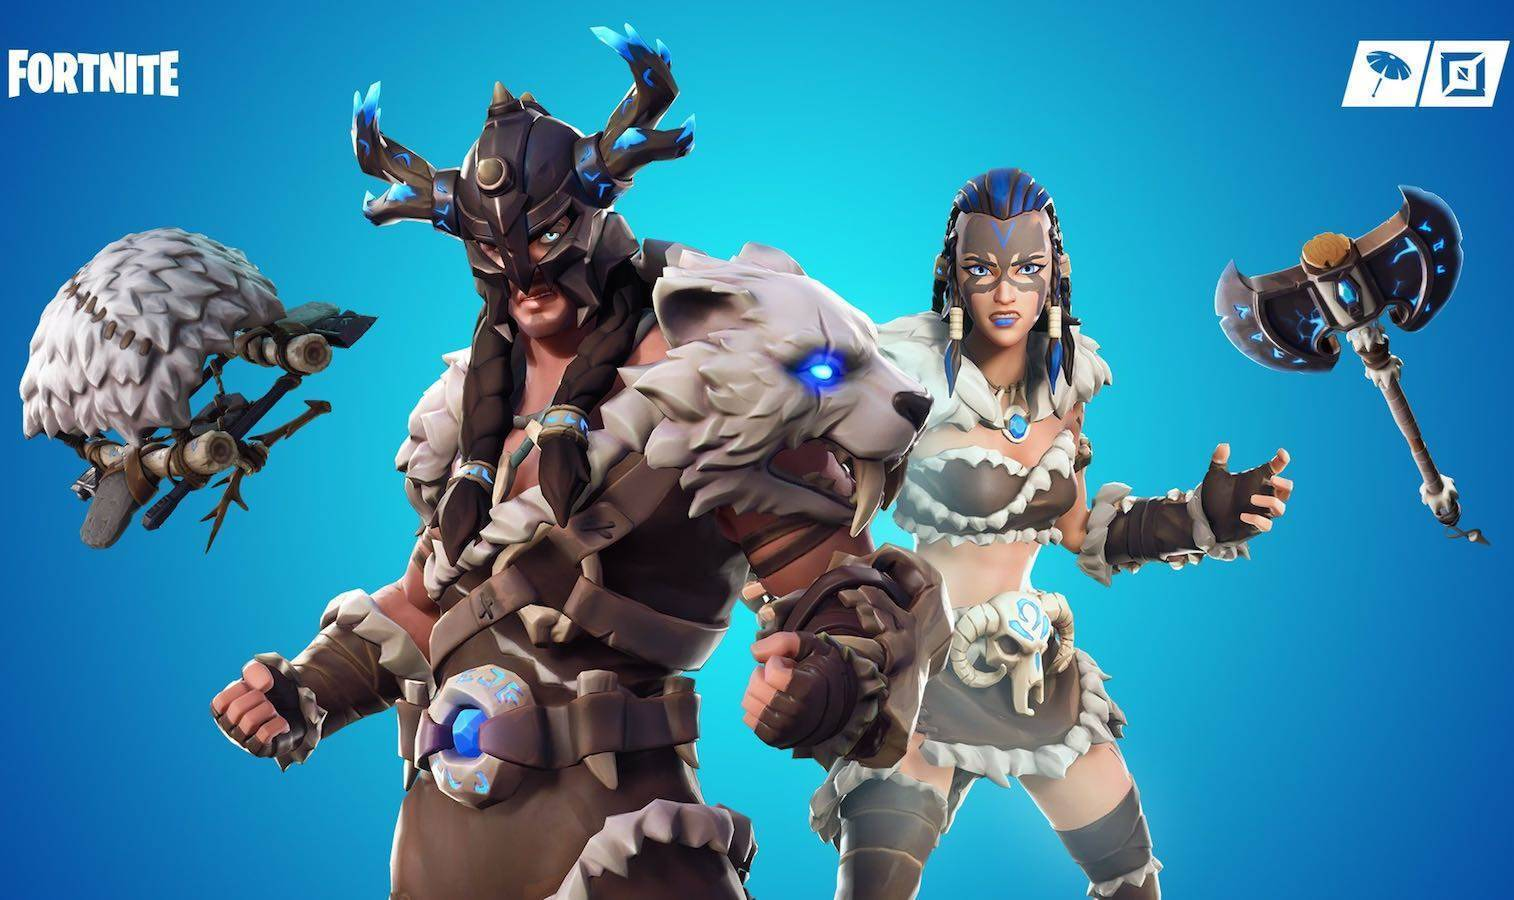 Fortnite Leaks Gamers Credentials Security Crn Australia Fortnite leaked skins & other cosmetics. fortnite leaks gamers credentials